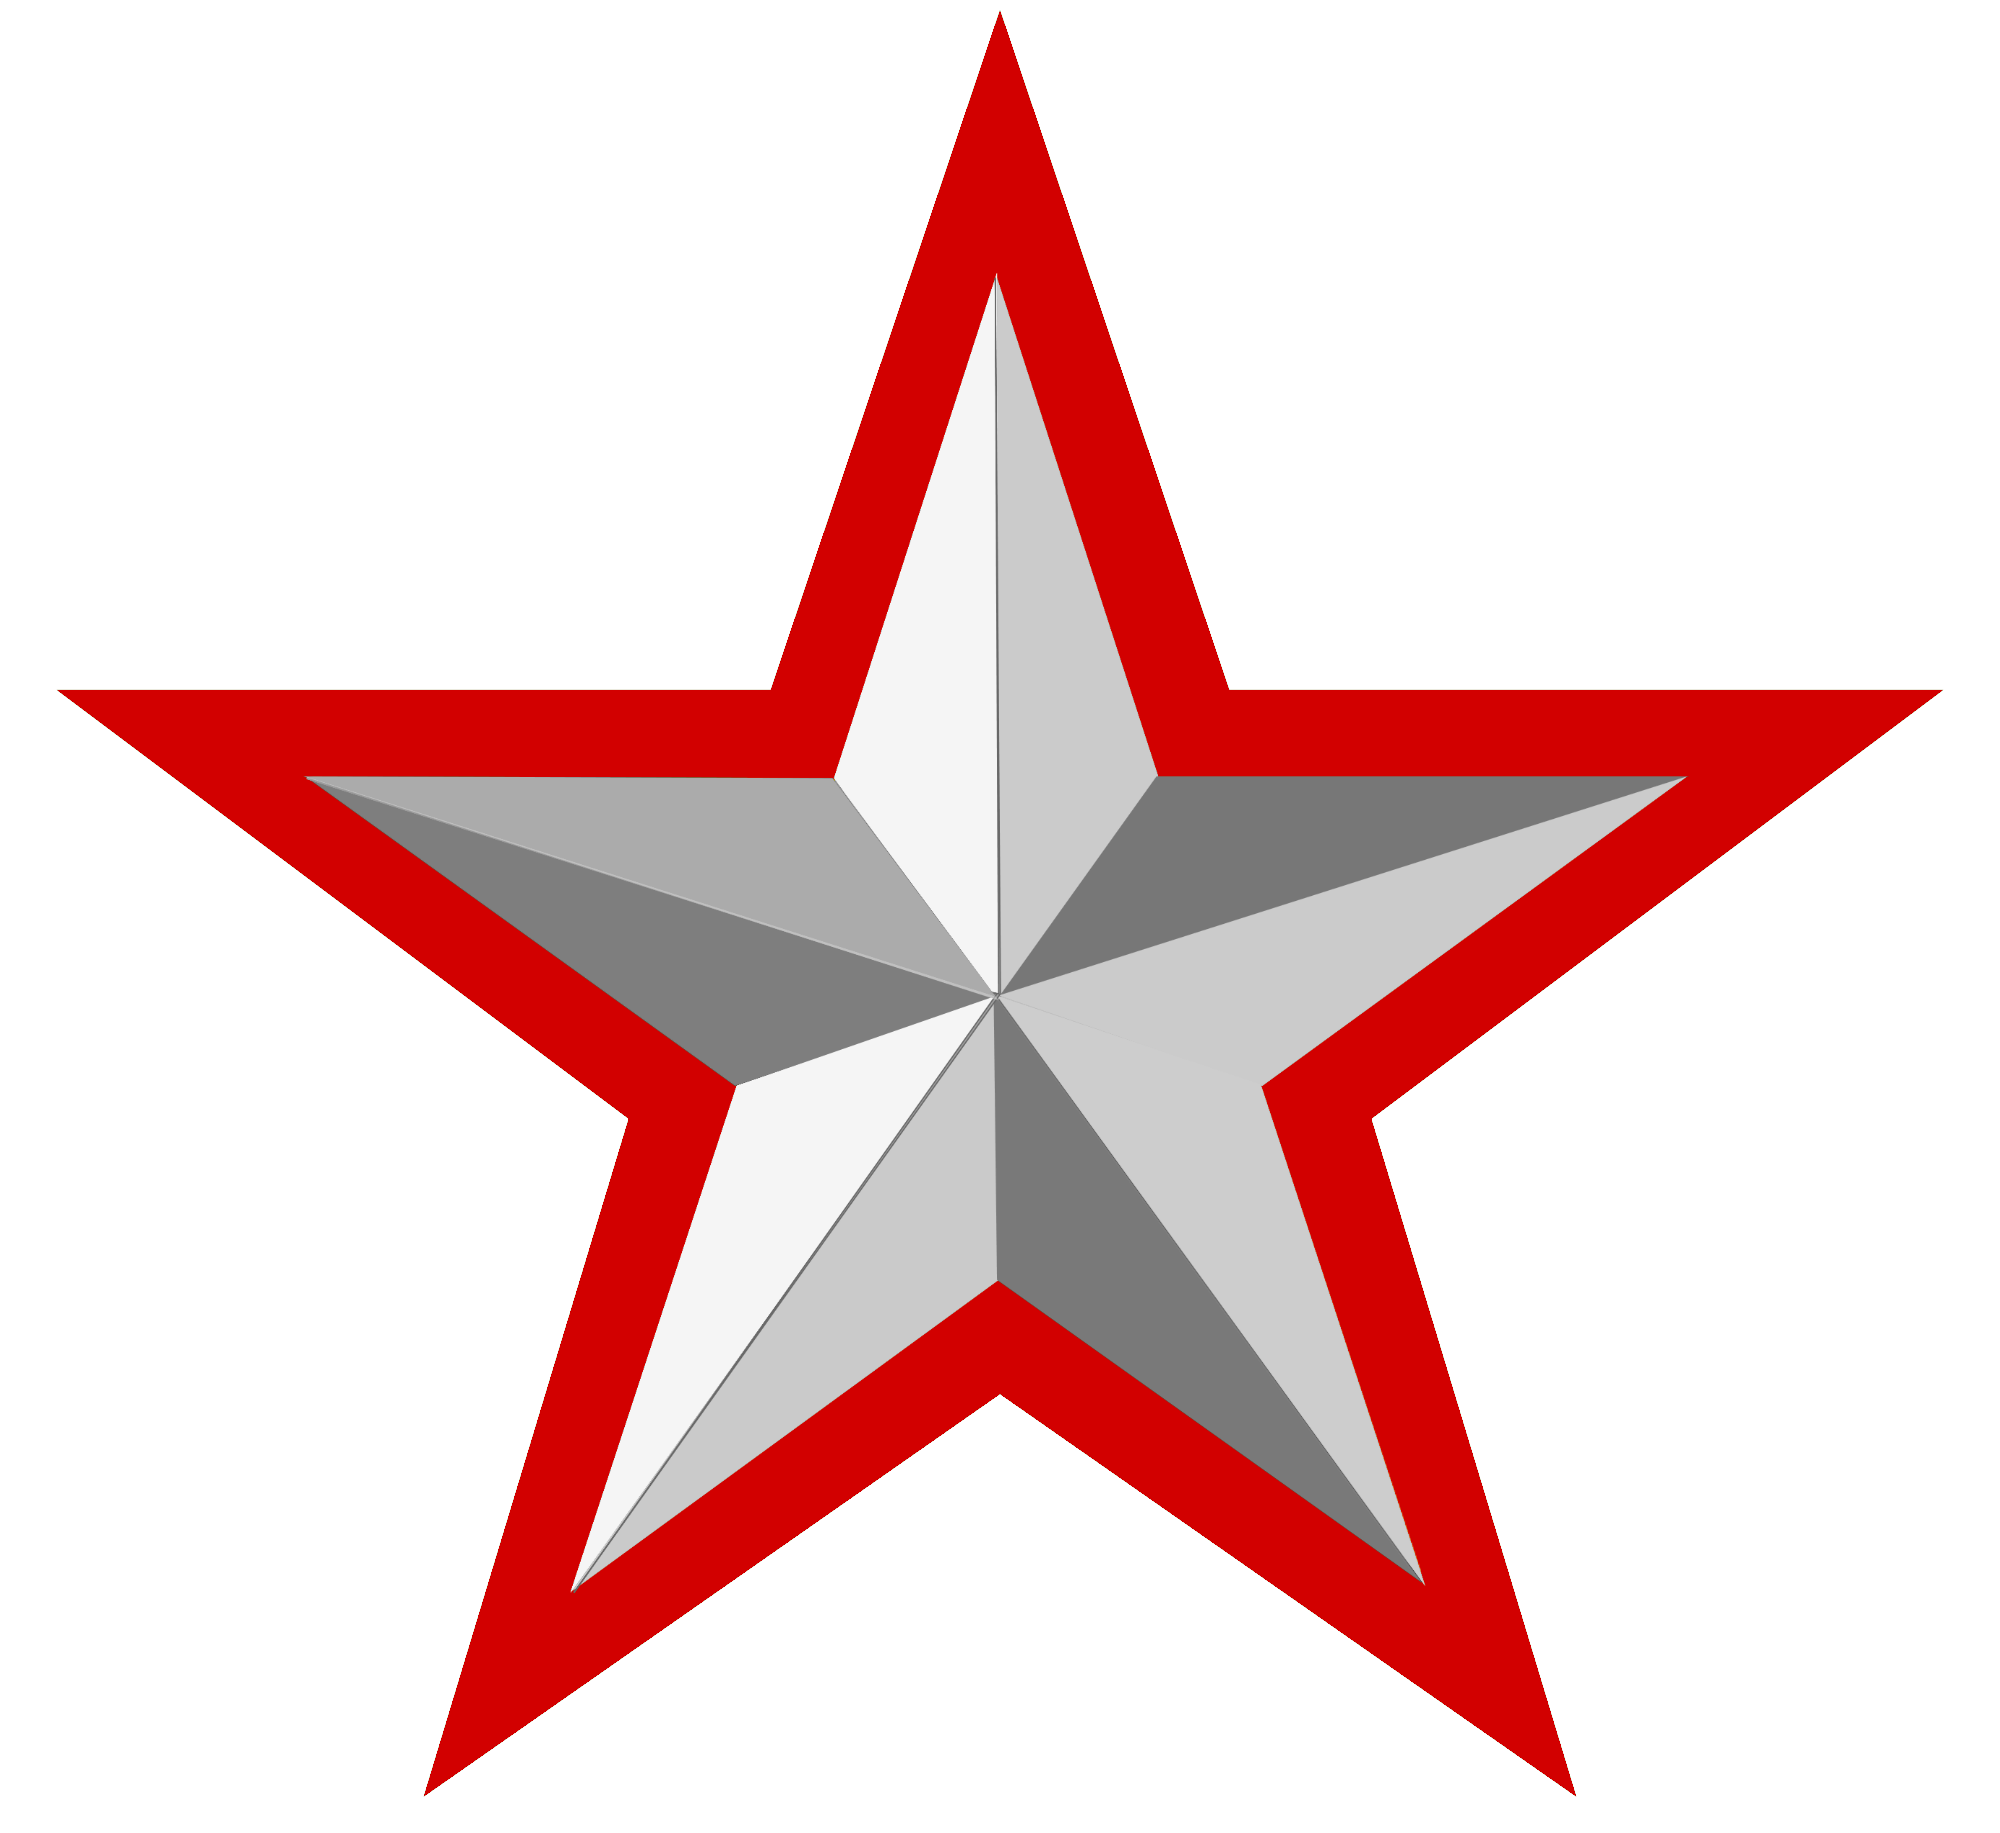 File:Silver Star With Red Border   Wikimedia Commons image #636